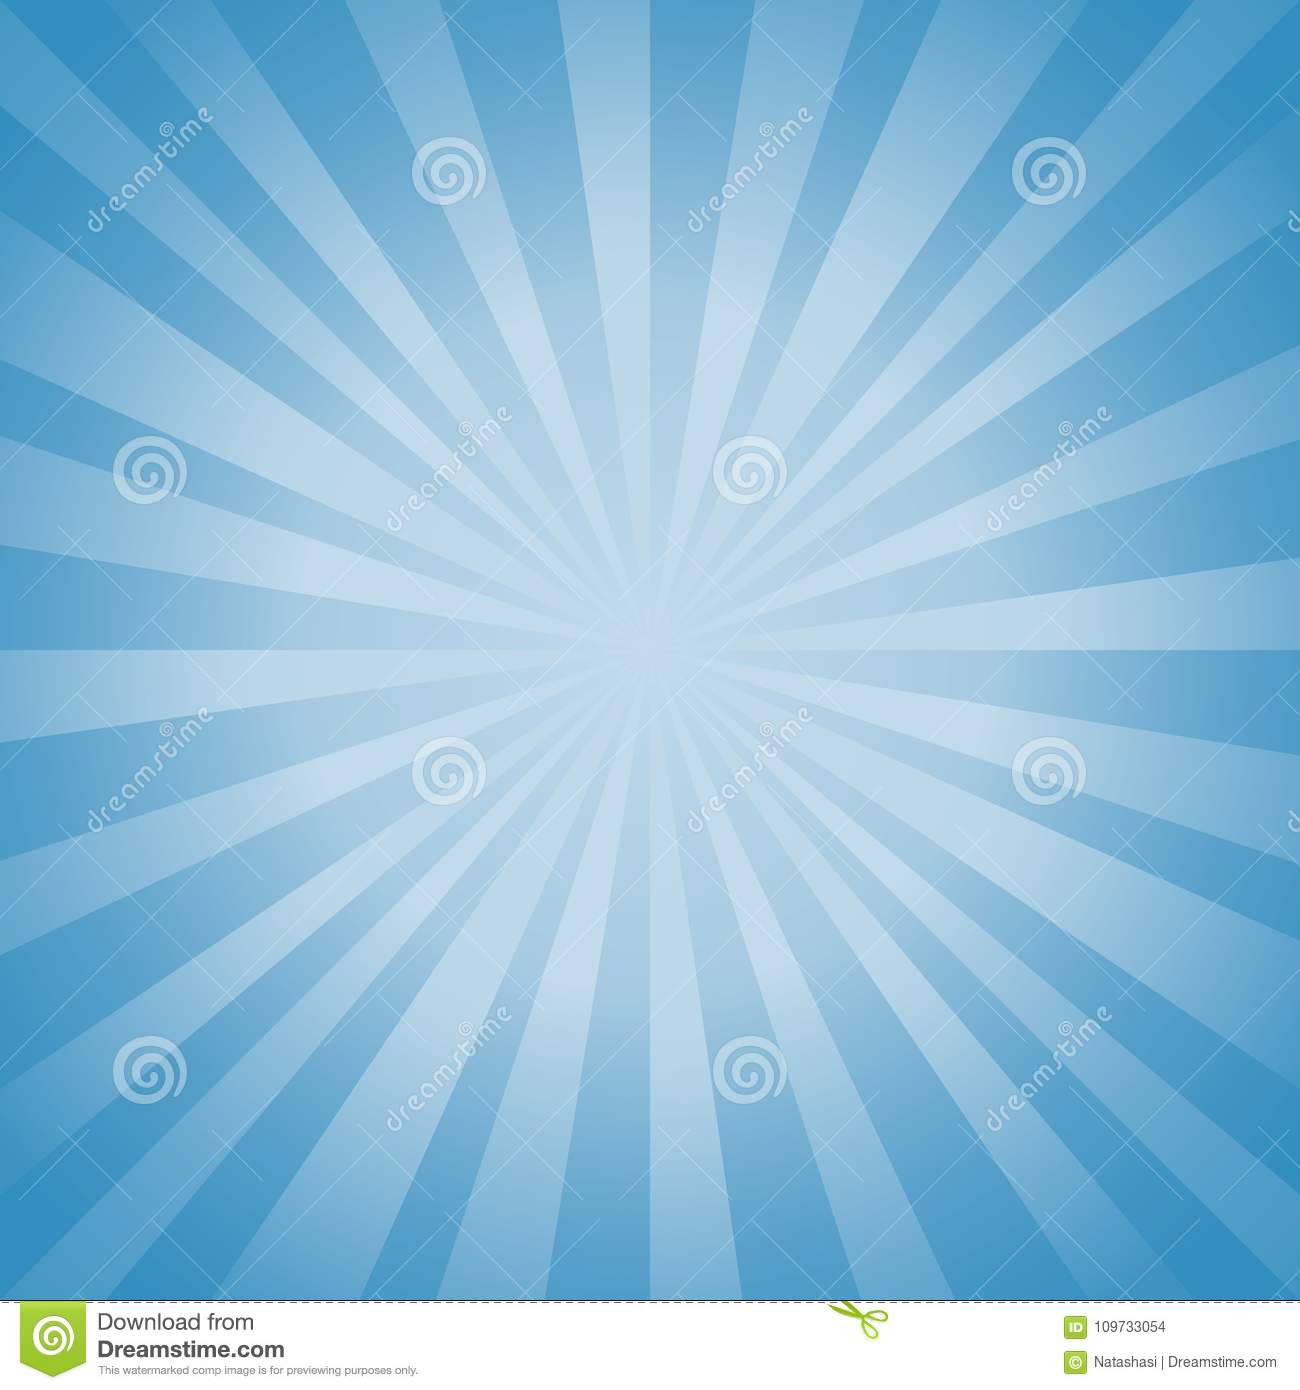 Abstract soft Blue rays background. Vector EPS 10, cmyk